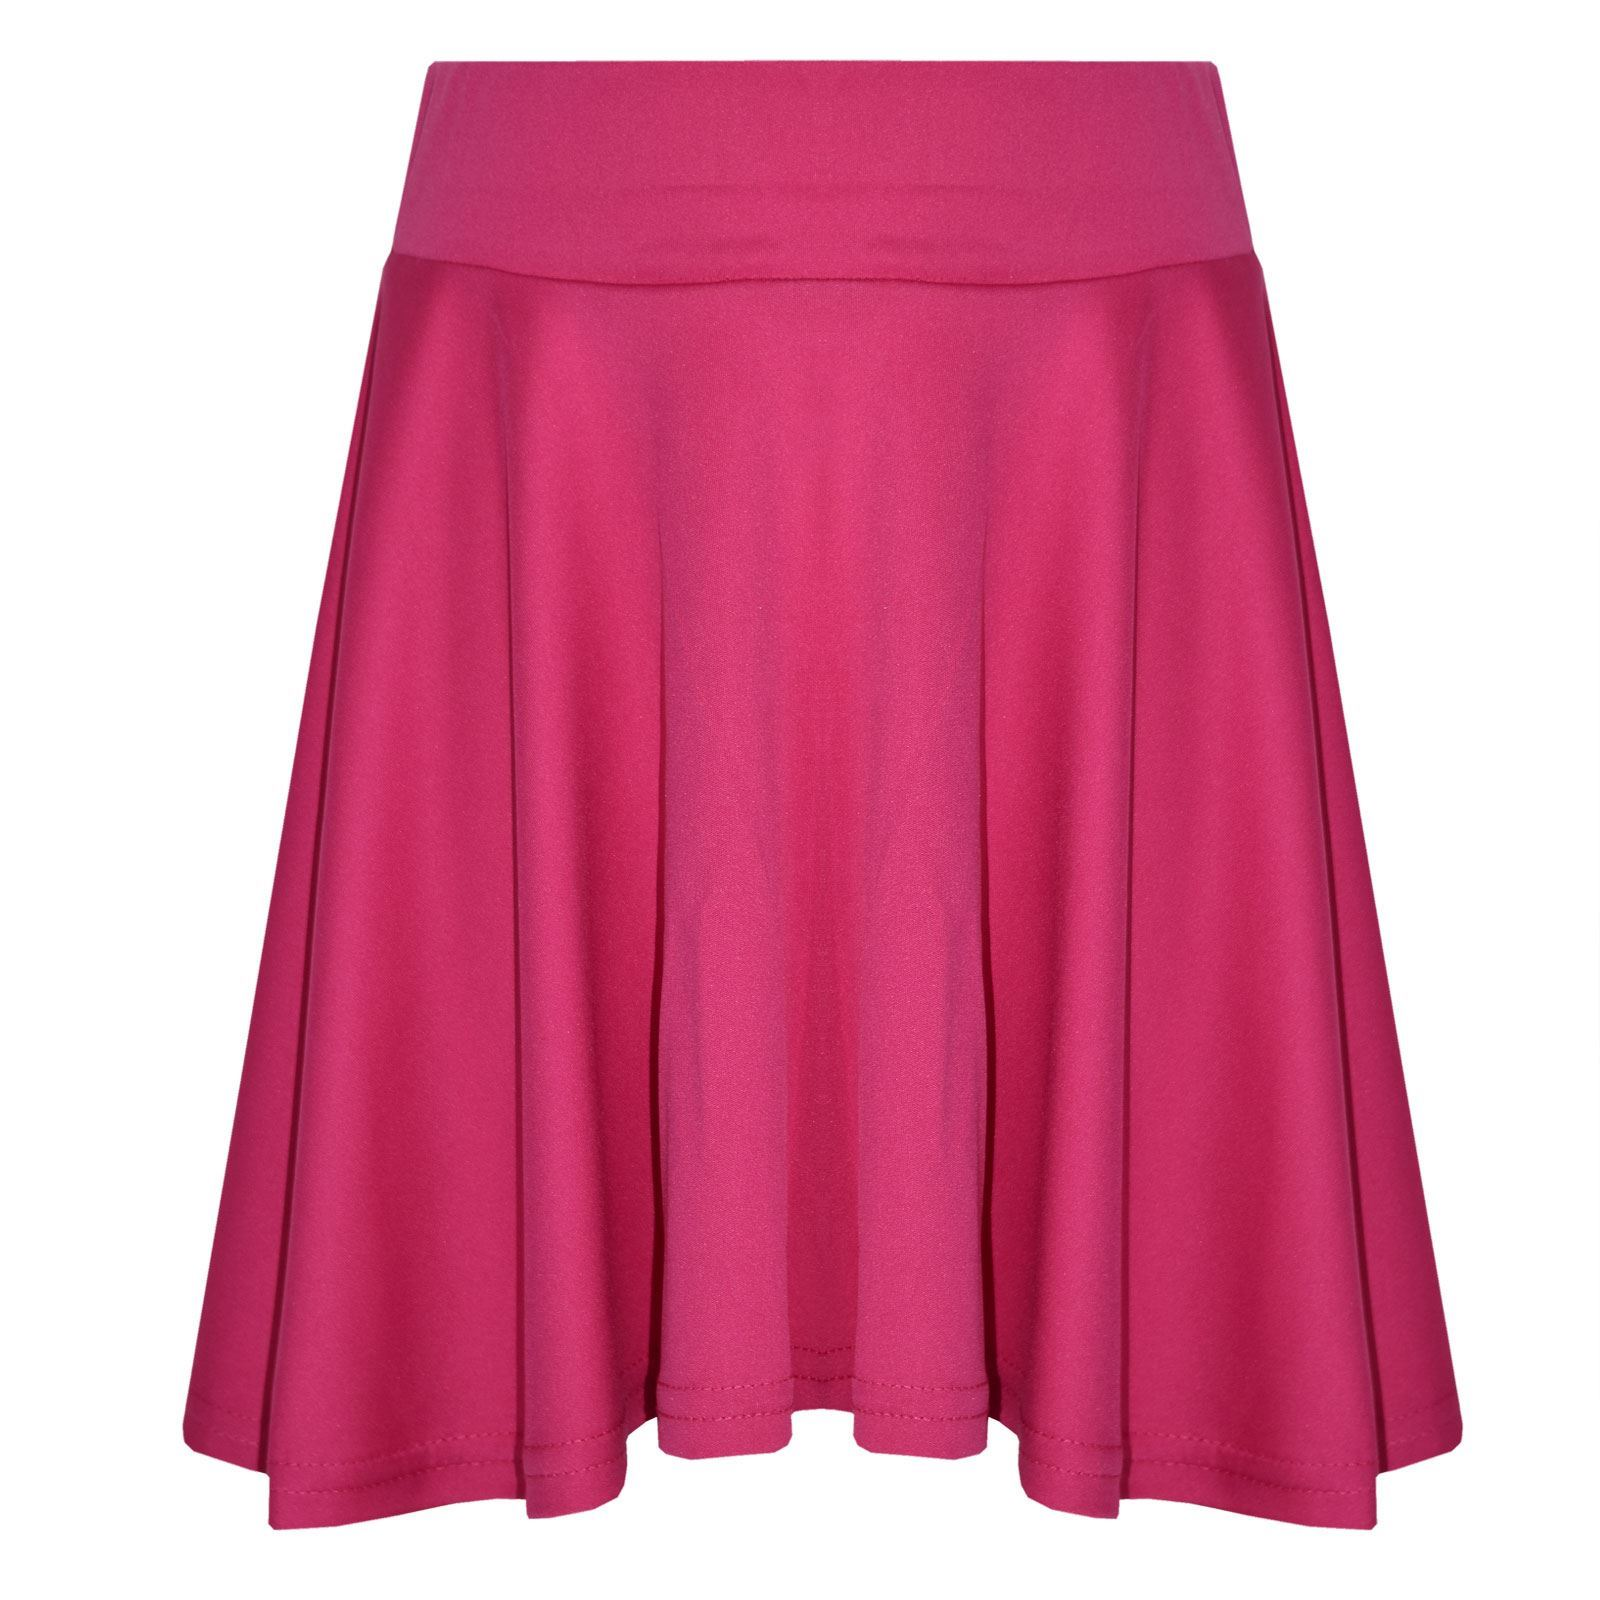 Shop for girls school skirts at pimpfilmzcq.cf Next day delivery and free returns available. s of products online. Buy girls school skirts now!